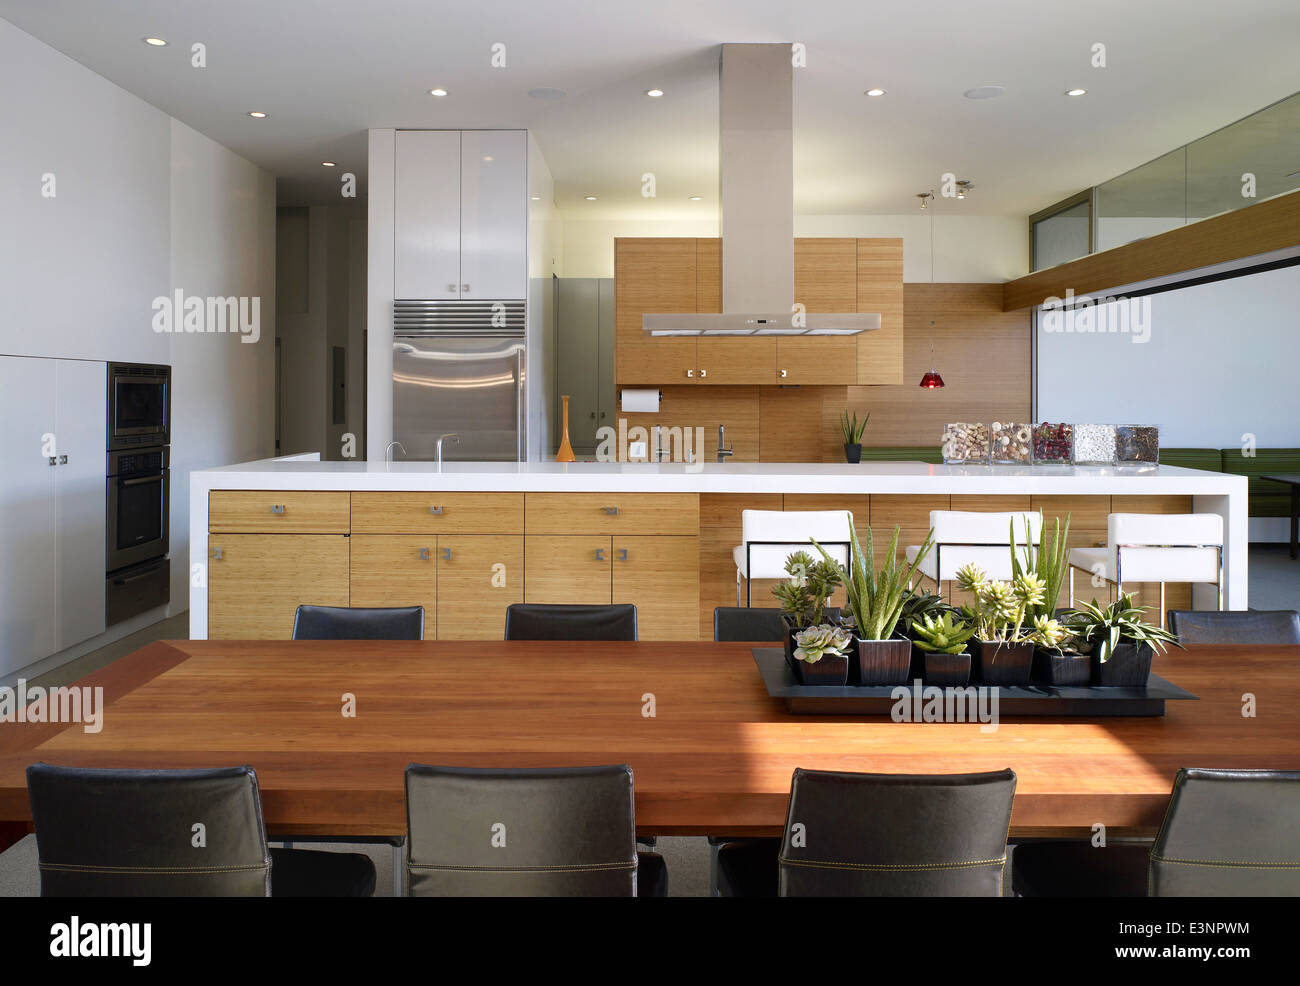 Open Plan Kitchen And Dining Area In Yin Yang House, Venice, California, USA